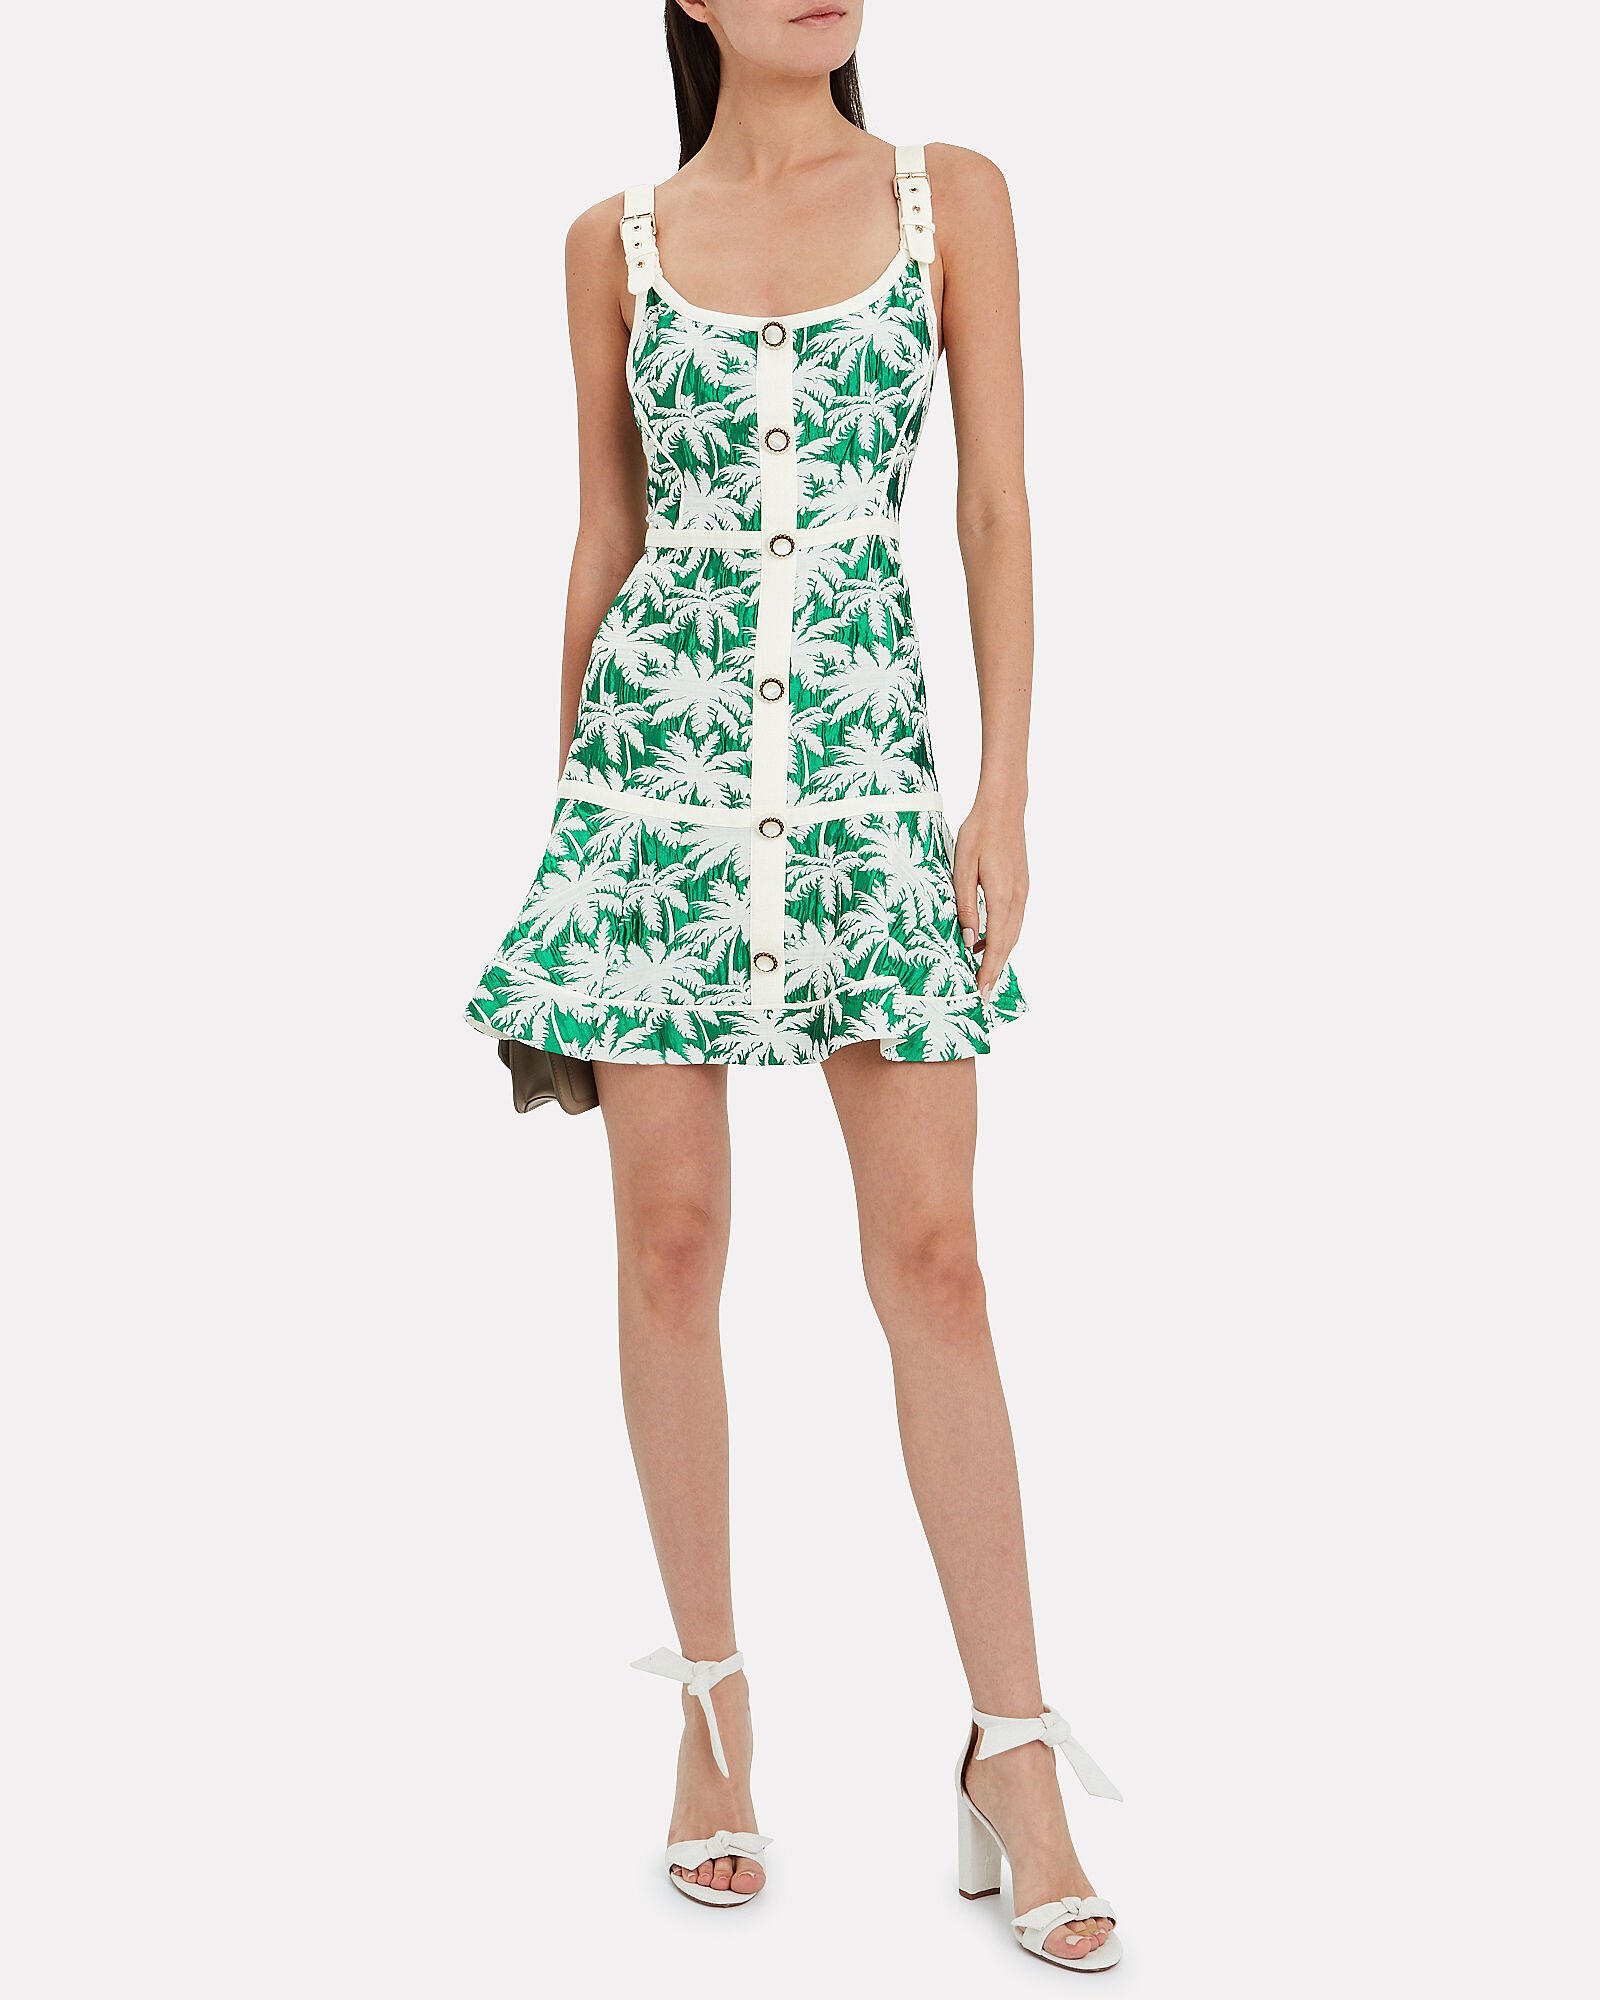 Lisel Sleeveless Jacquard Mini Dress, MULTI, hi-res